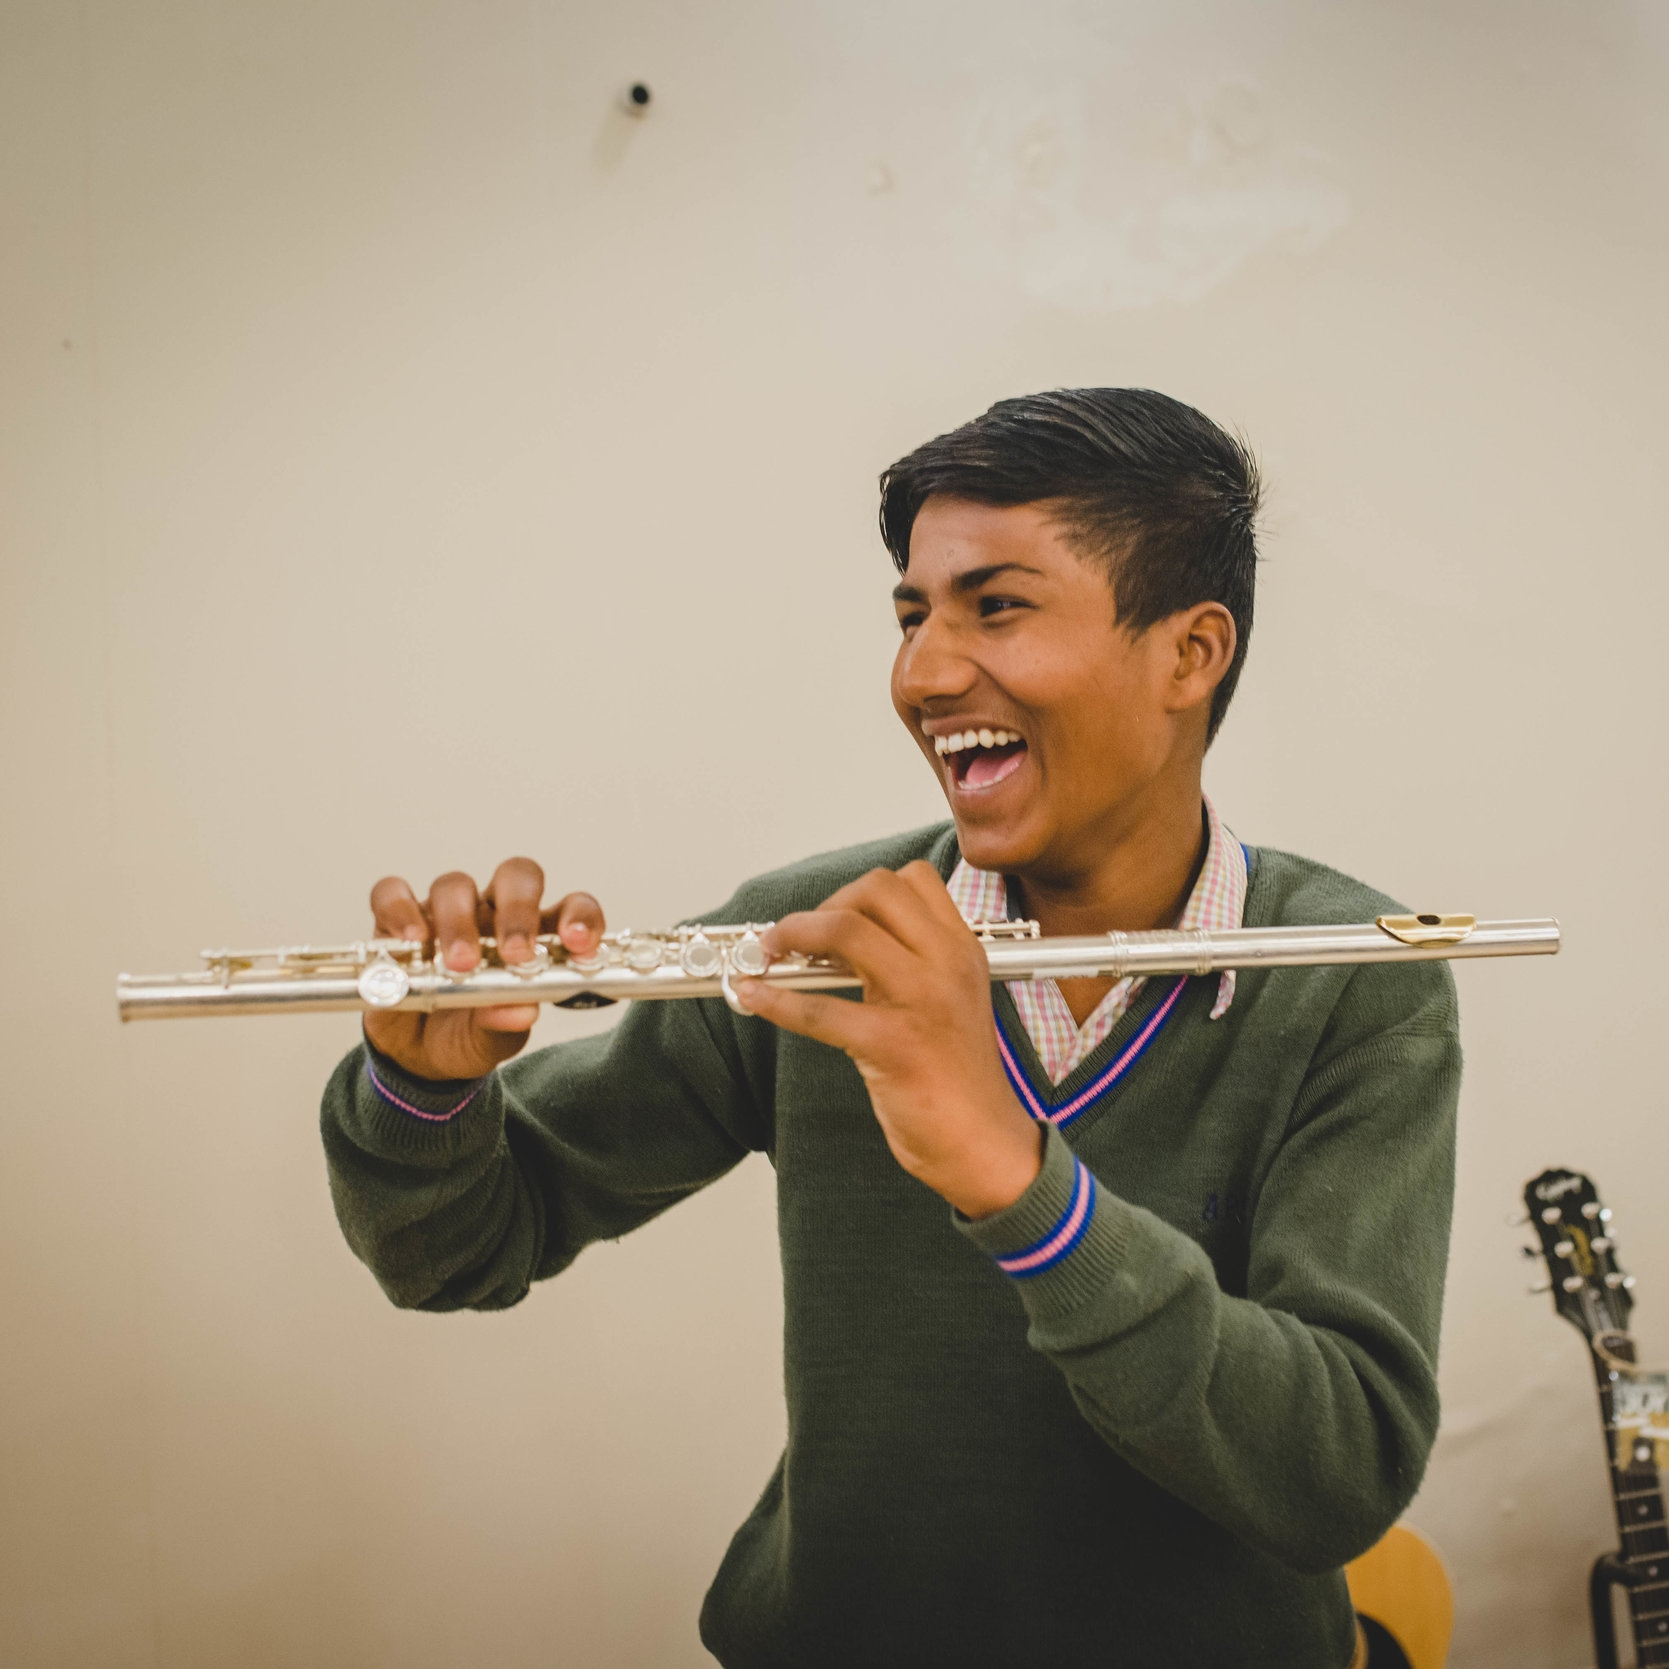 Atul, aged 15, couldn't help but smile as he held a flute for the very first time.